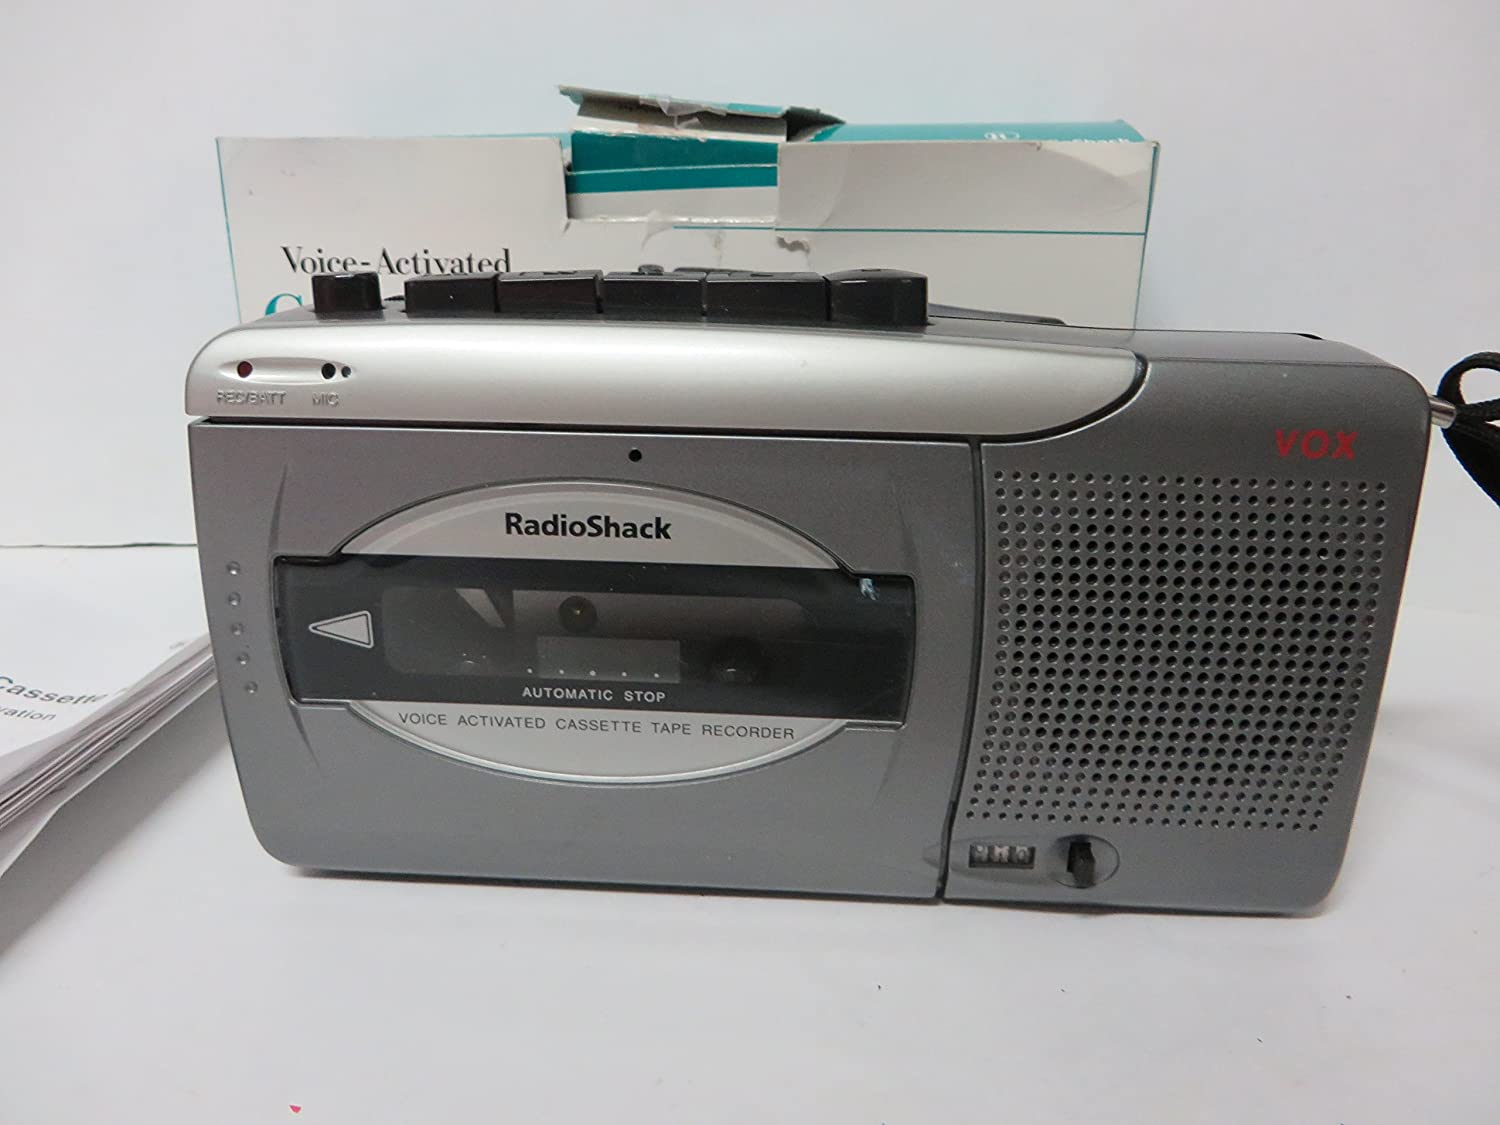 Amazon.com: Radio Shack voice-activated Cassette Recorder CTR-123 standard  size tapes uaed.: Home Audio & Theater